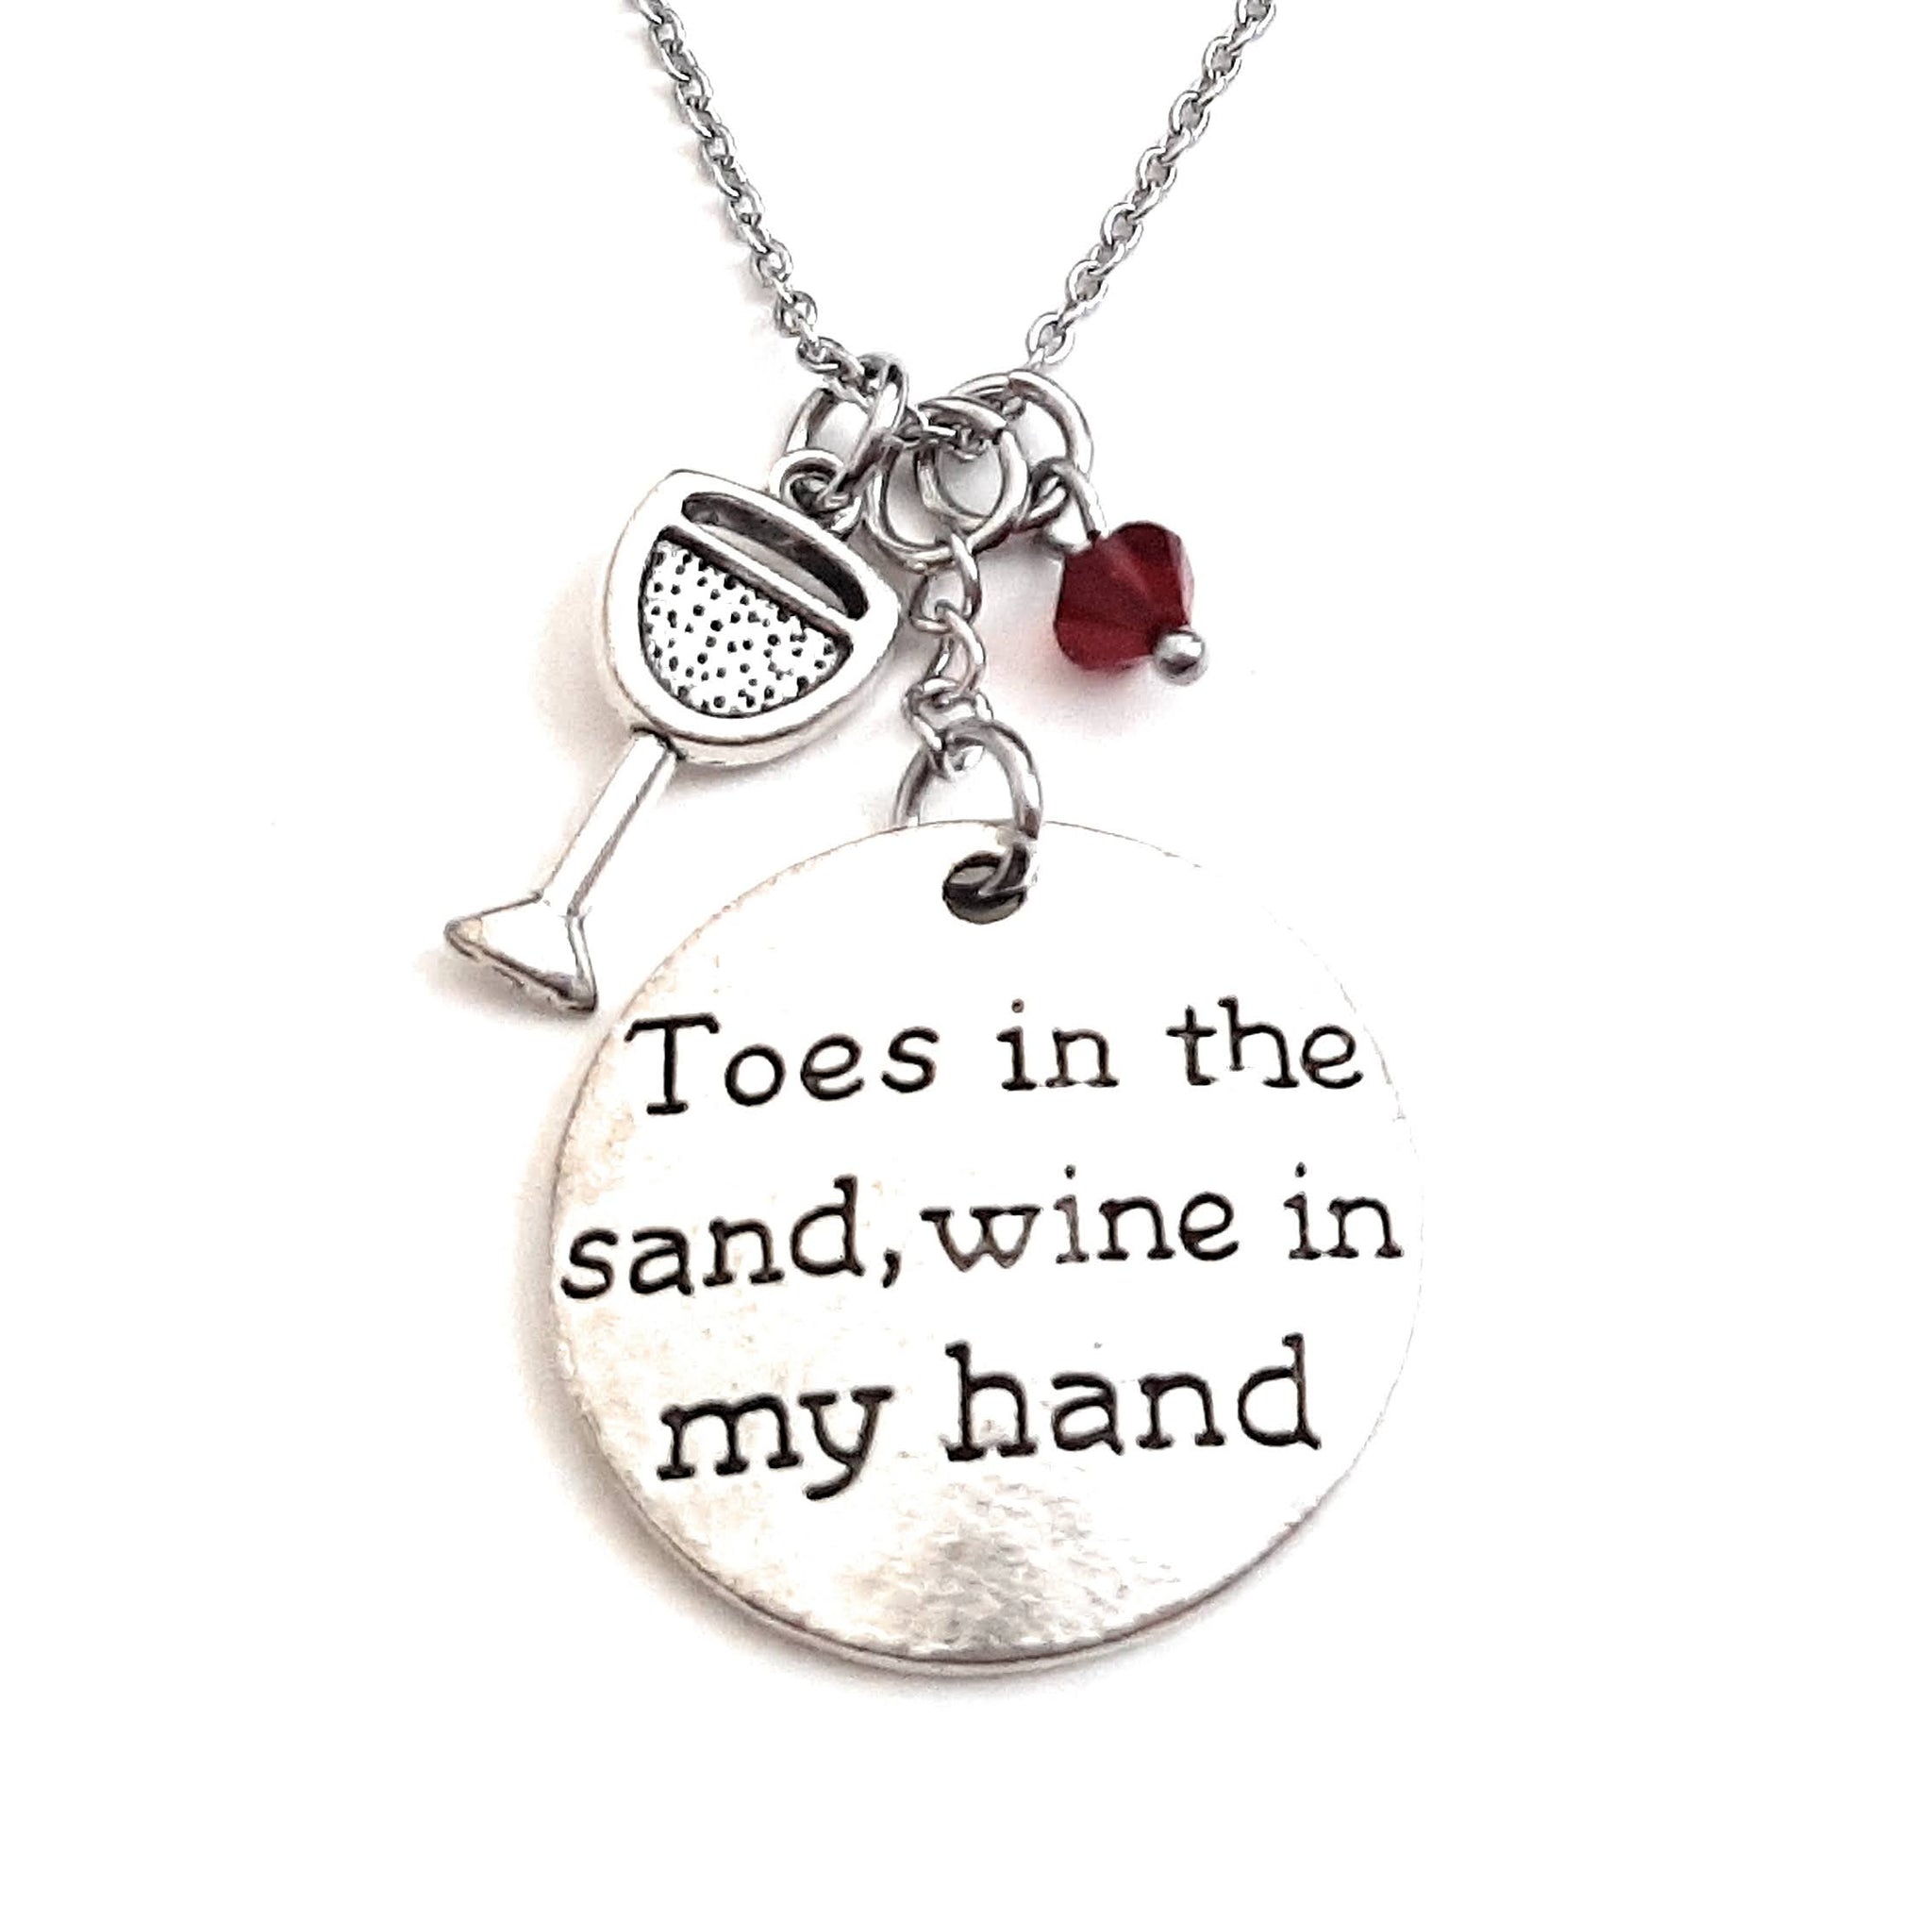 "Message Pendant Necklace ""Toes in the Sand Wine in my Hand"" Your Choice of Charm and Birthstone Color"